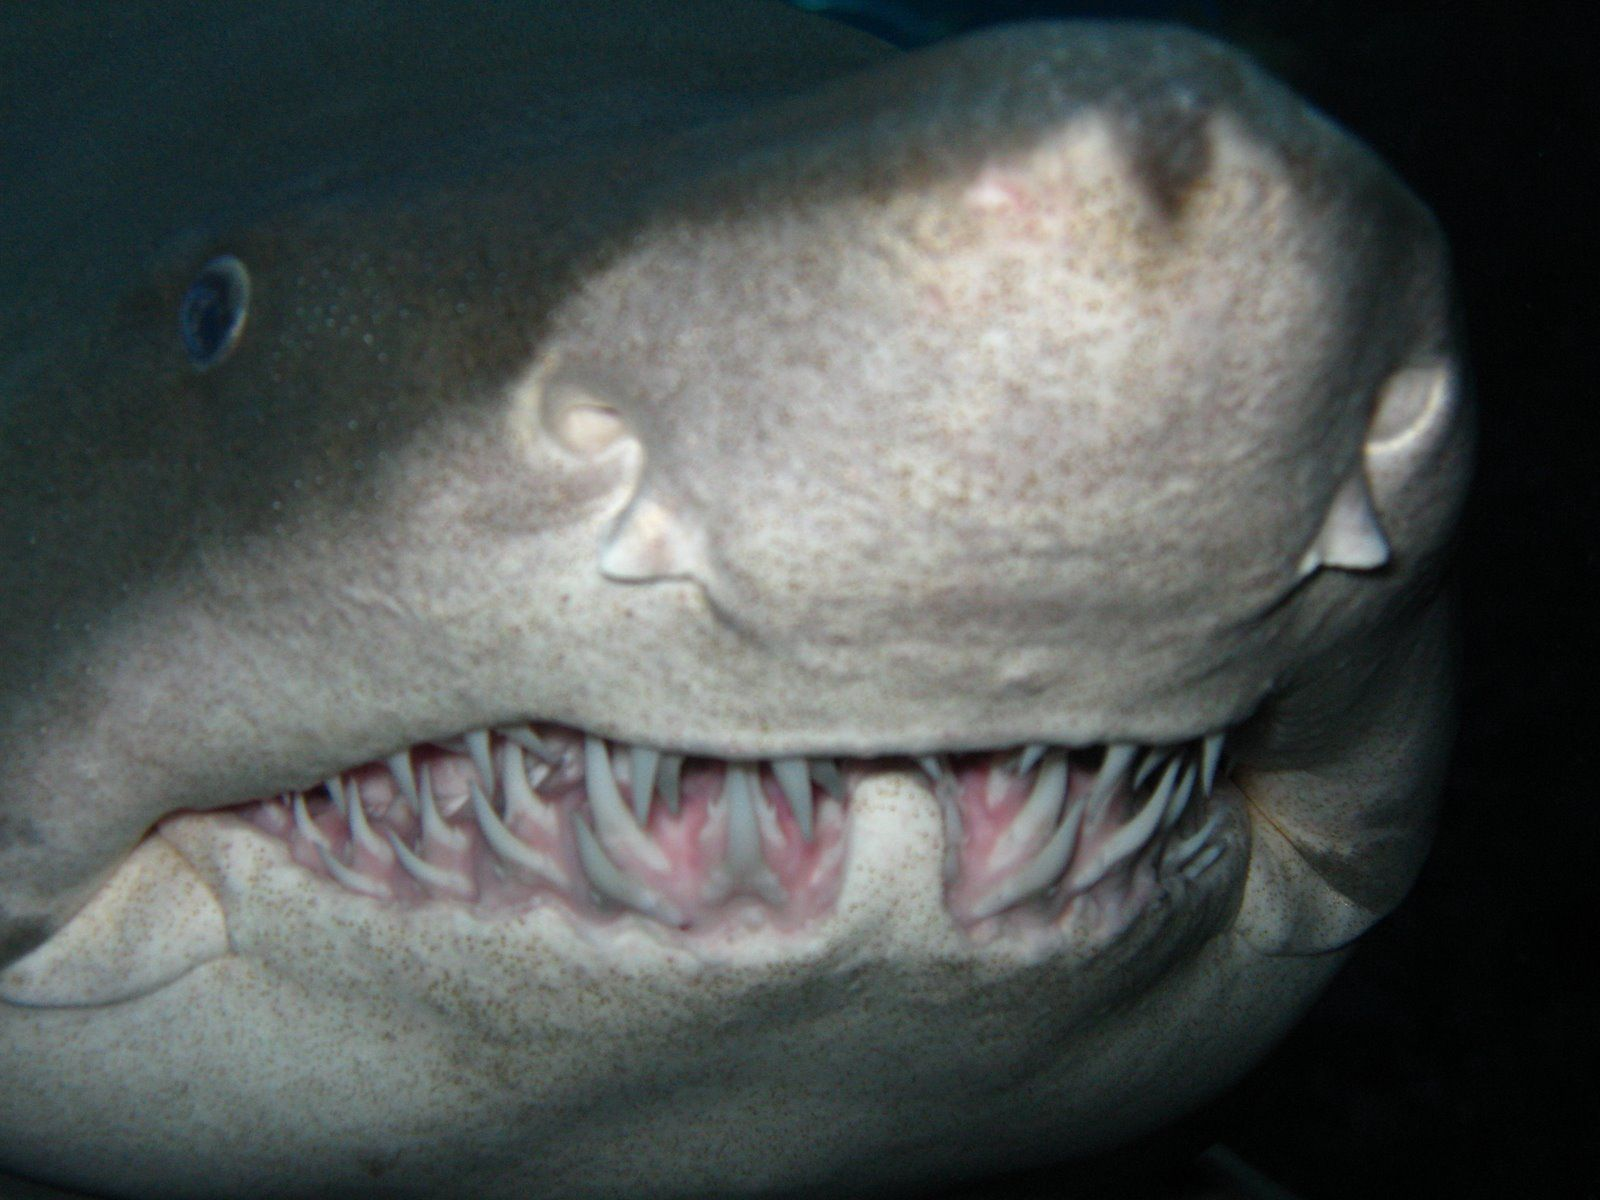 Sand tiger shark information amp pictures of sand tiger sharks - Creepy Real Creatures Real Scary Shark Pictures 15630 Hd Wallpapers